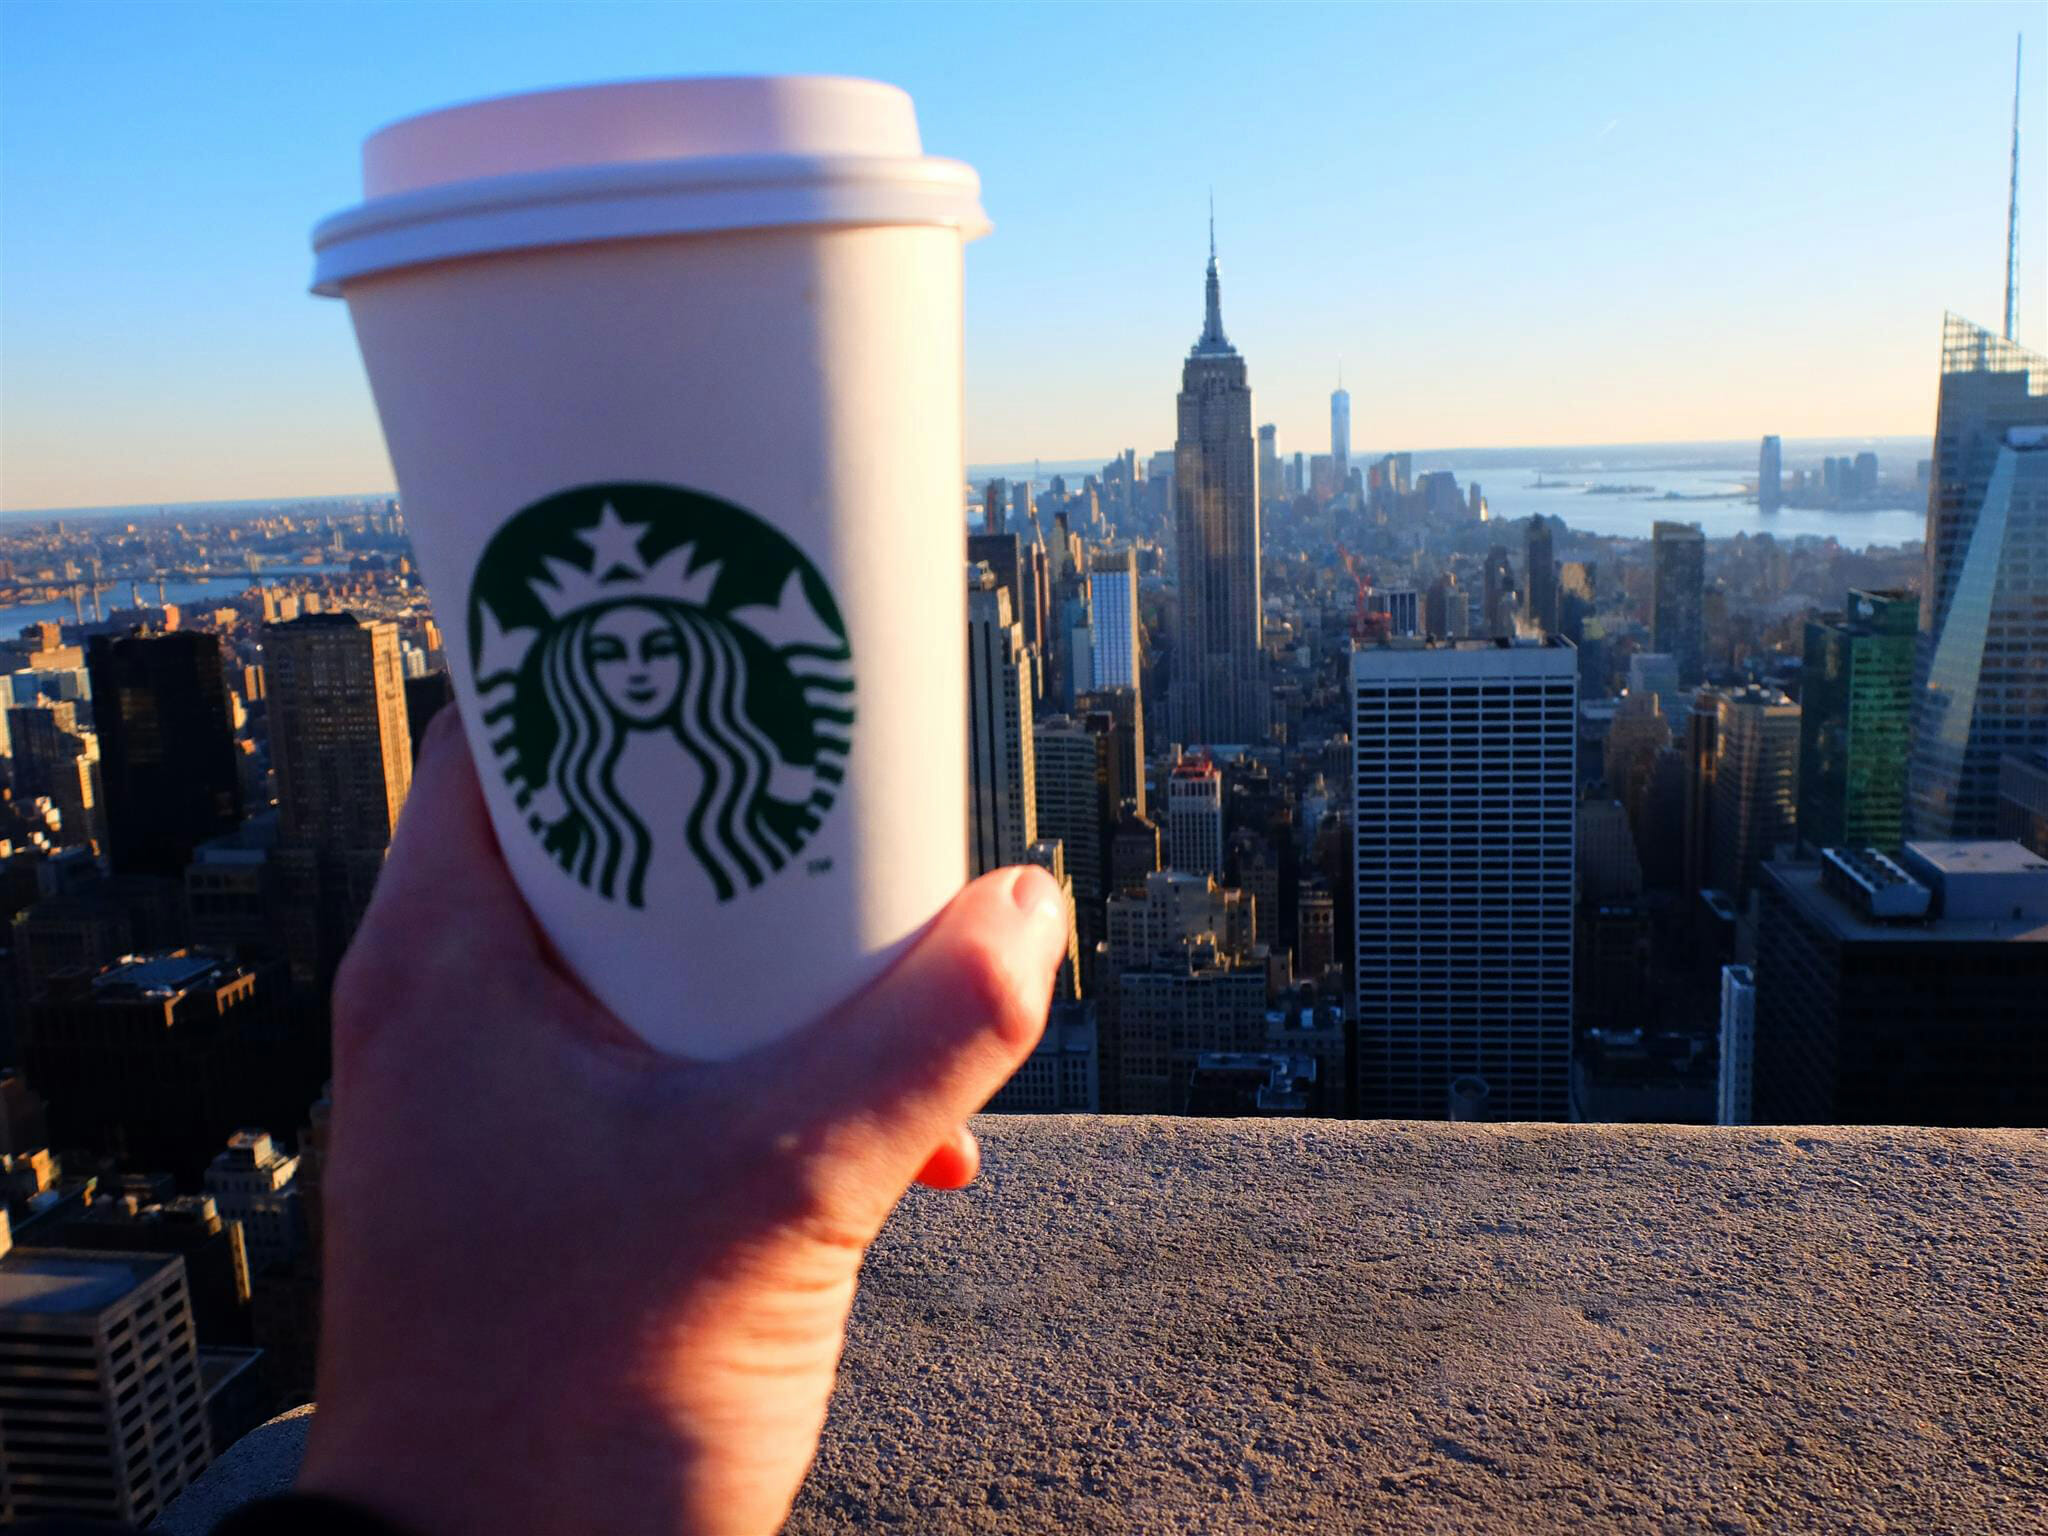 Starbucks and Empire State Building – High Quality Wallpaper